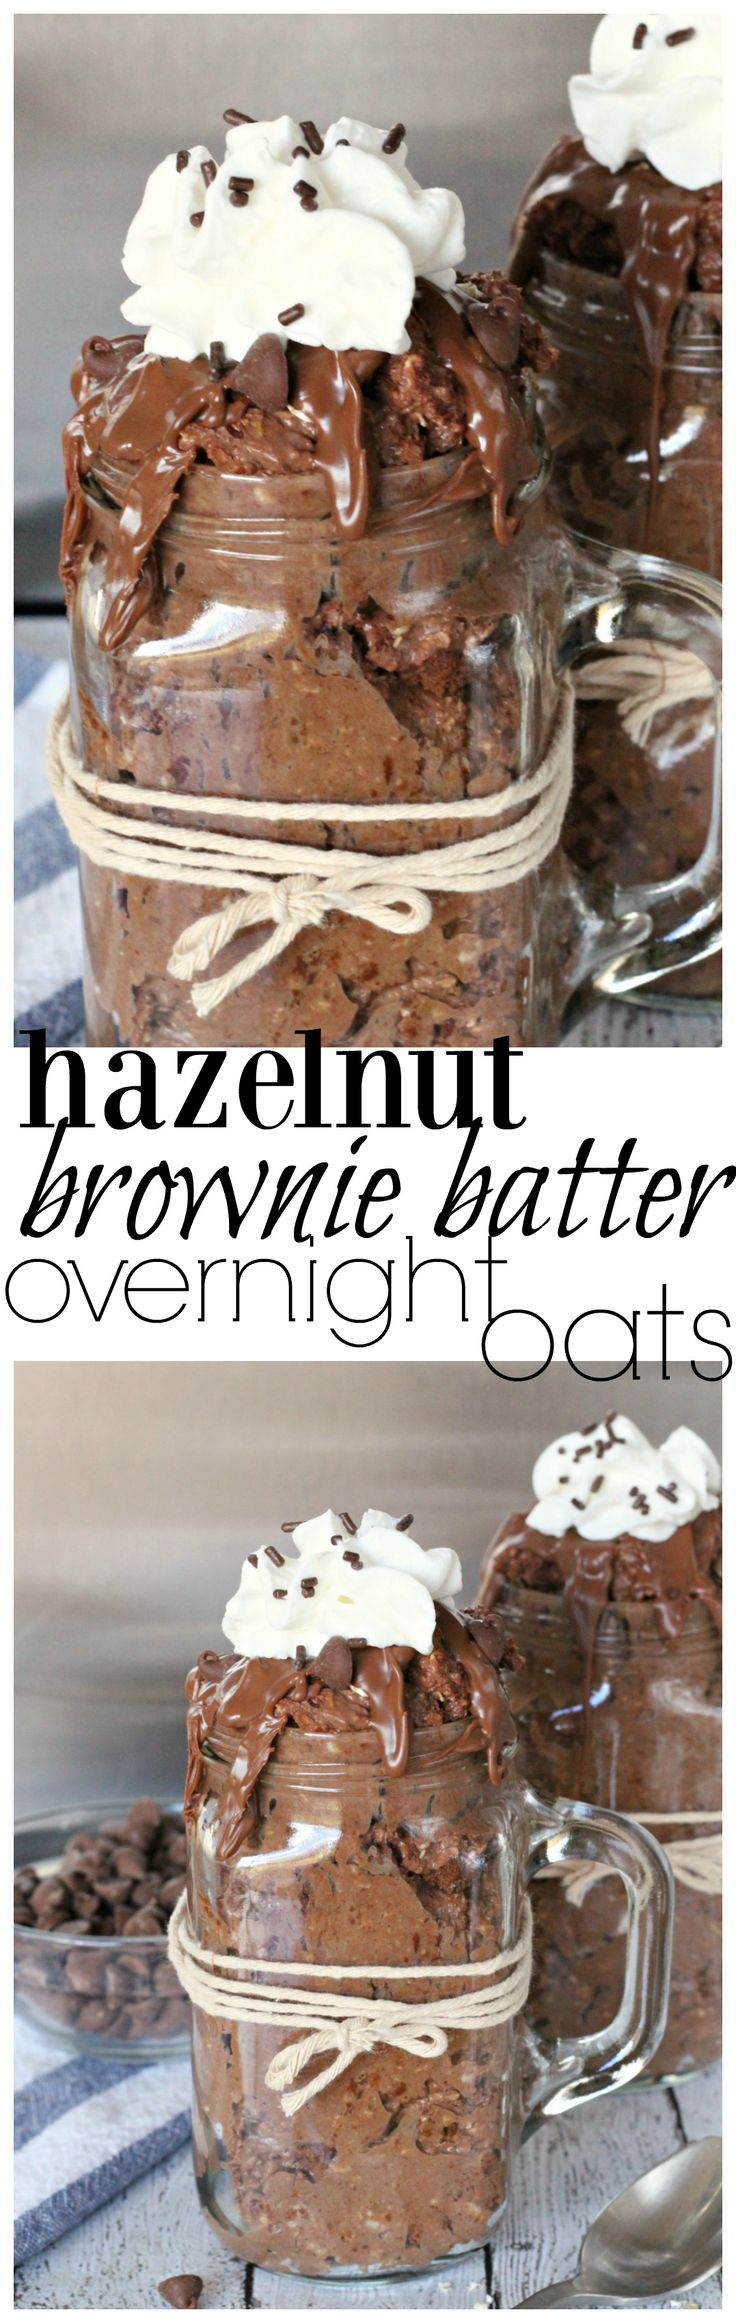 Hazelnut brownie-flavored overnight oats that are ready for you first thing in the morning. #IDSimplyPure #ad